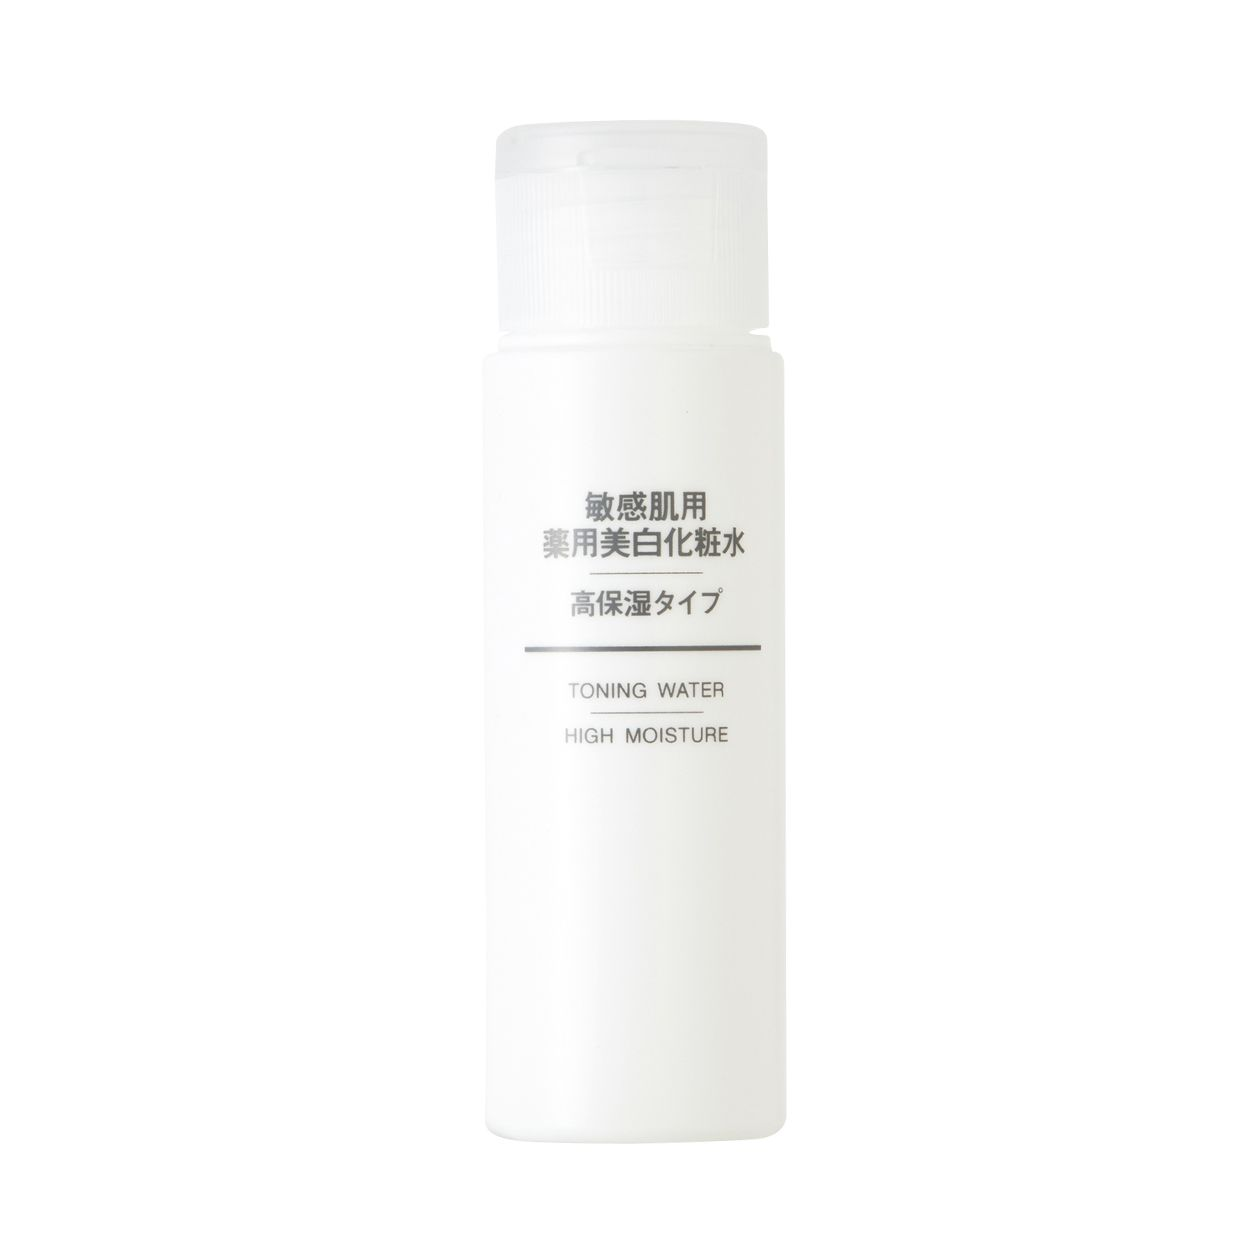 Travel Sized Beauty Products Muji Toning Water High Moisture